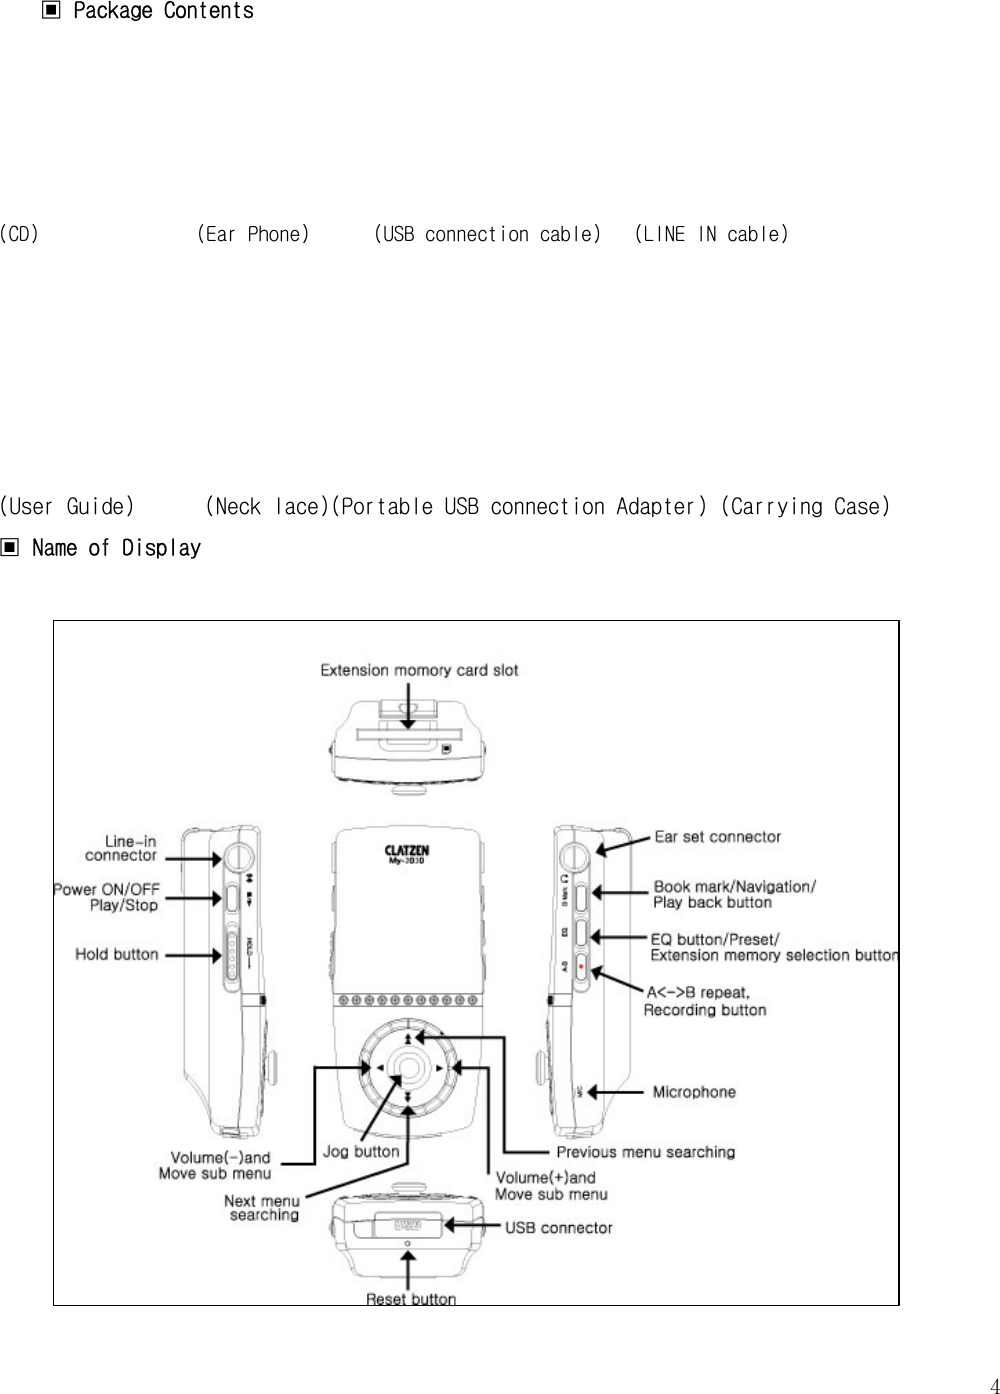 Dg Lab My 2030 Mp3 Player User Manual Usb Connection Diagram 4 Package Contents Cd Ear Phone Cable